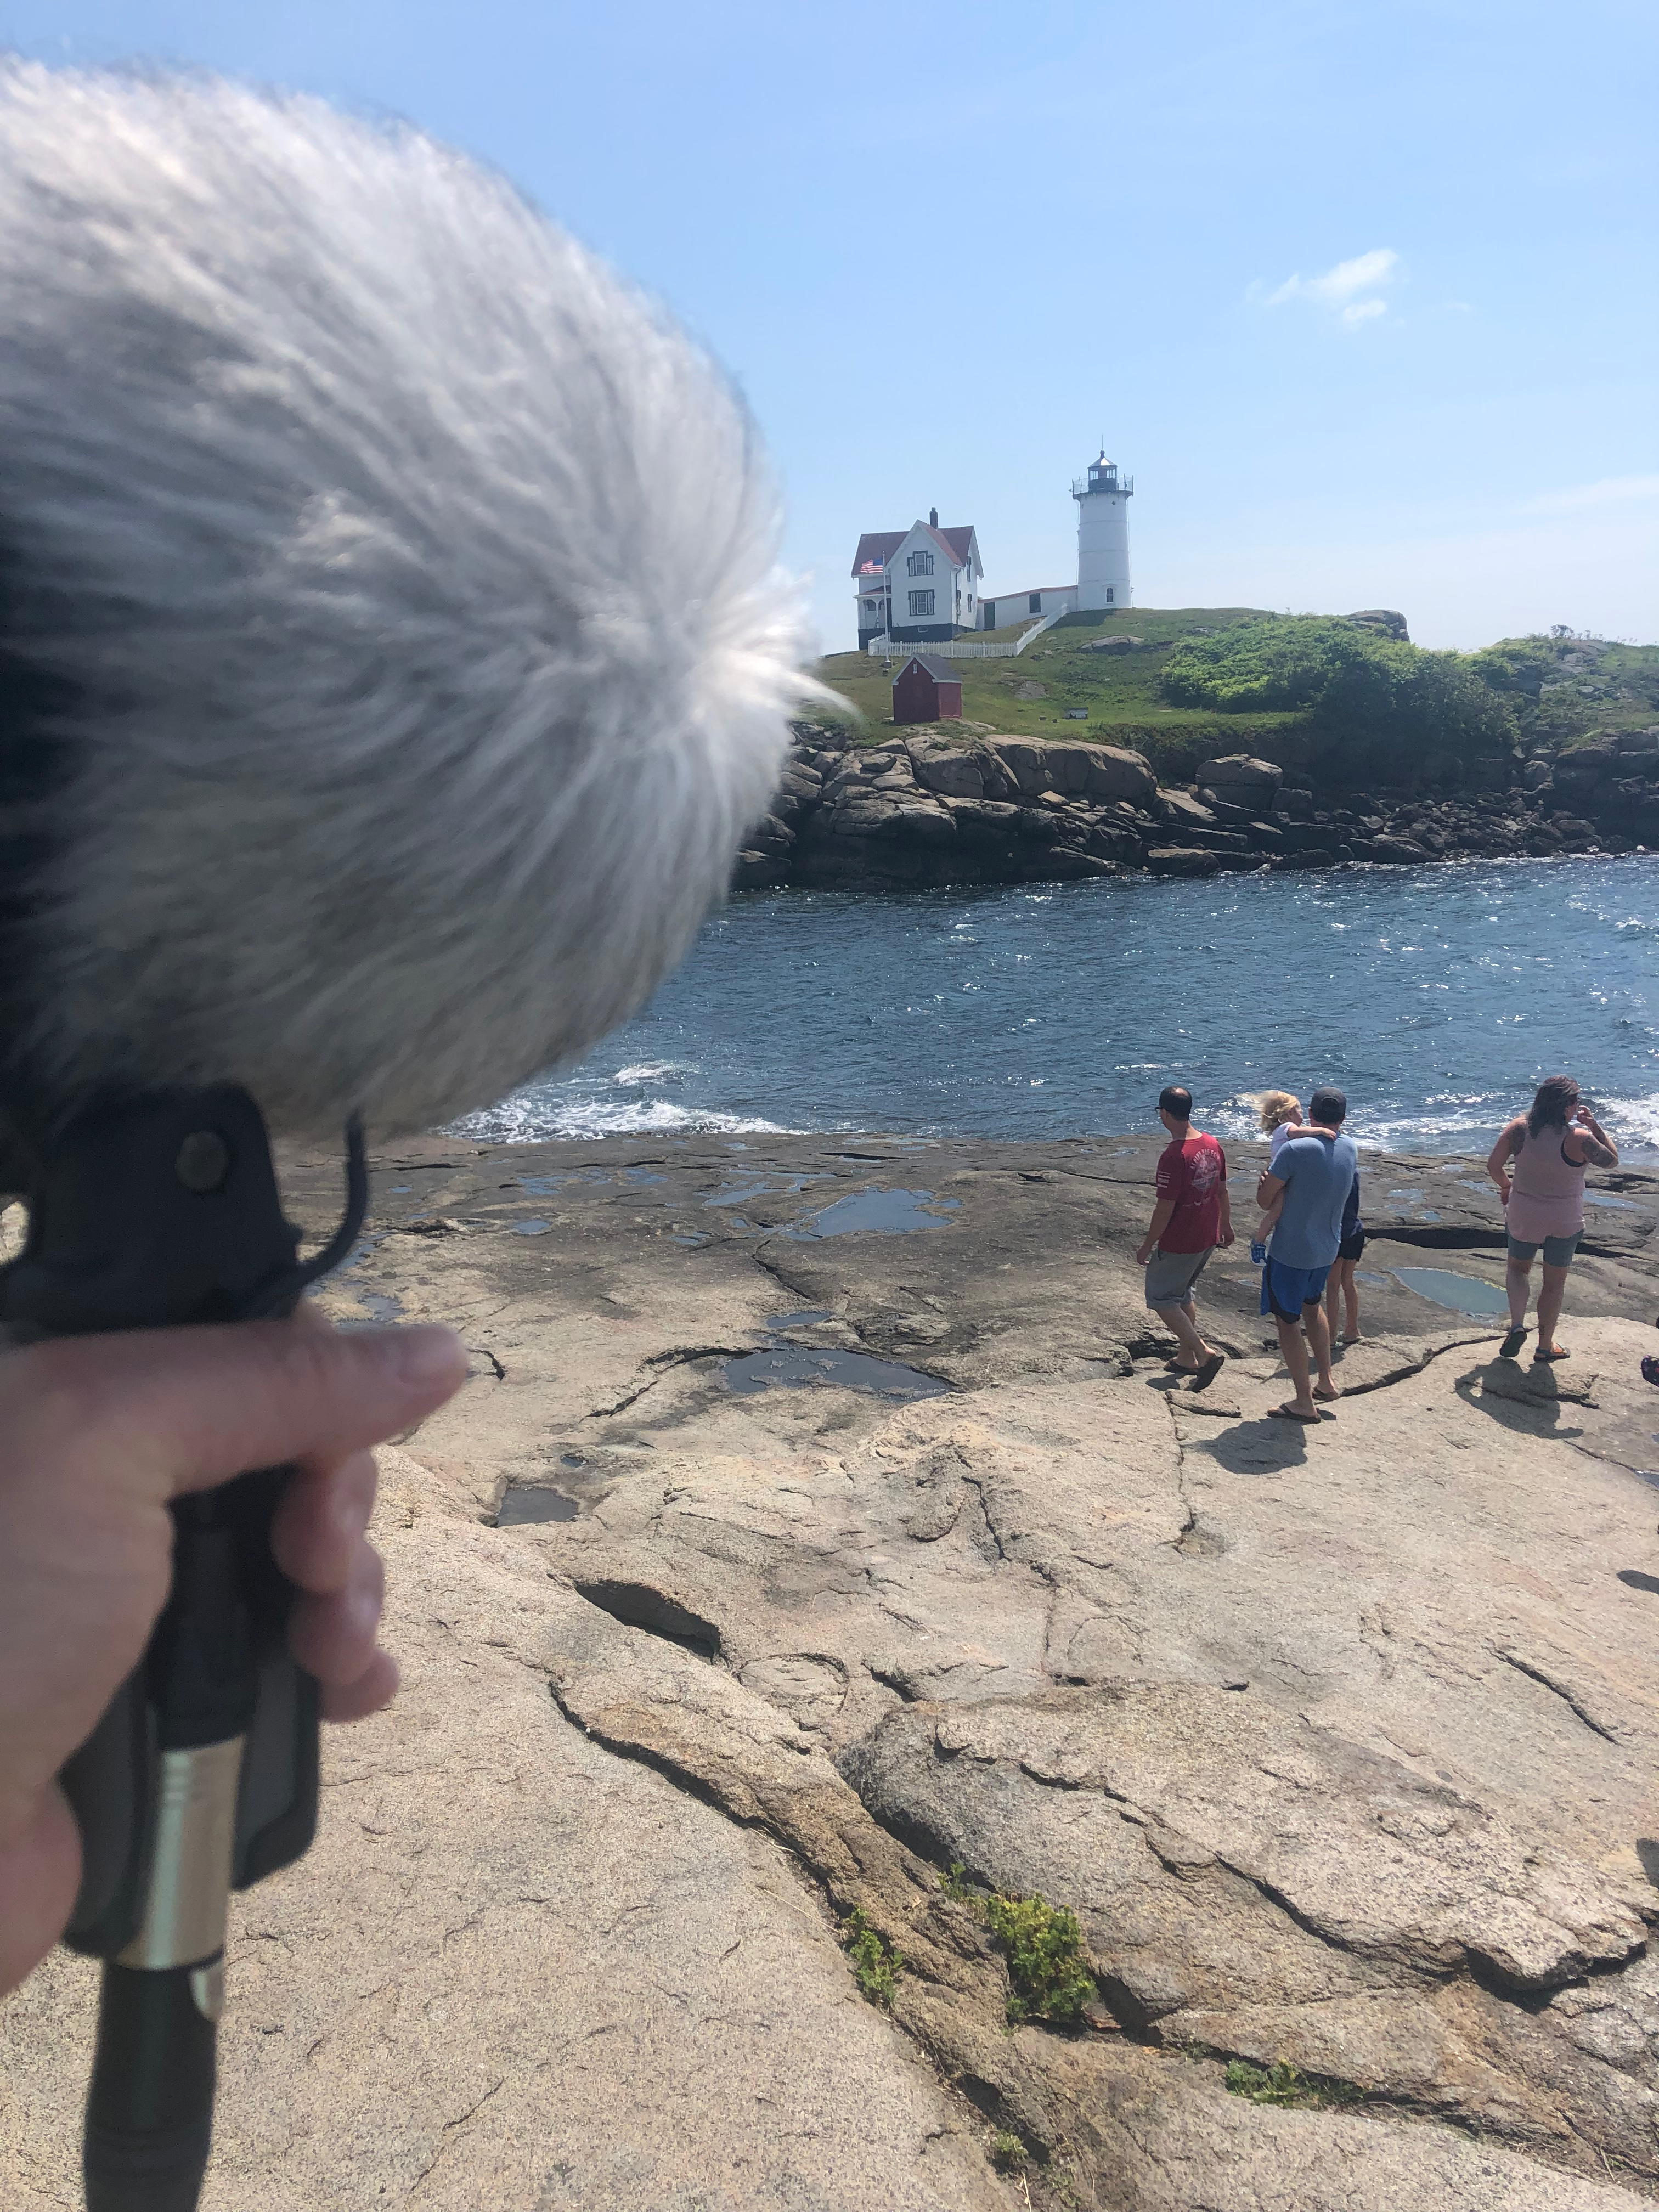 Lighthouses are noisy places - lots of people